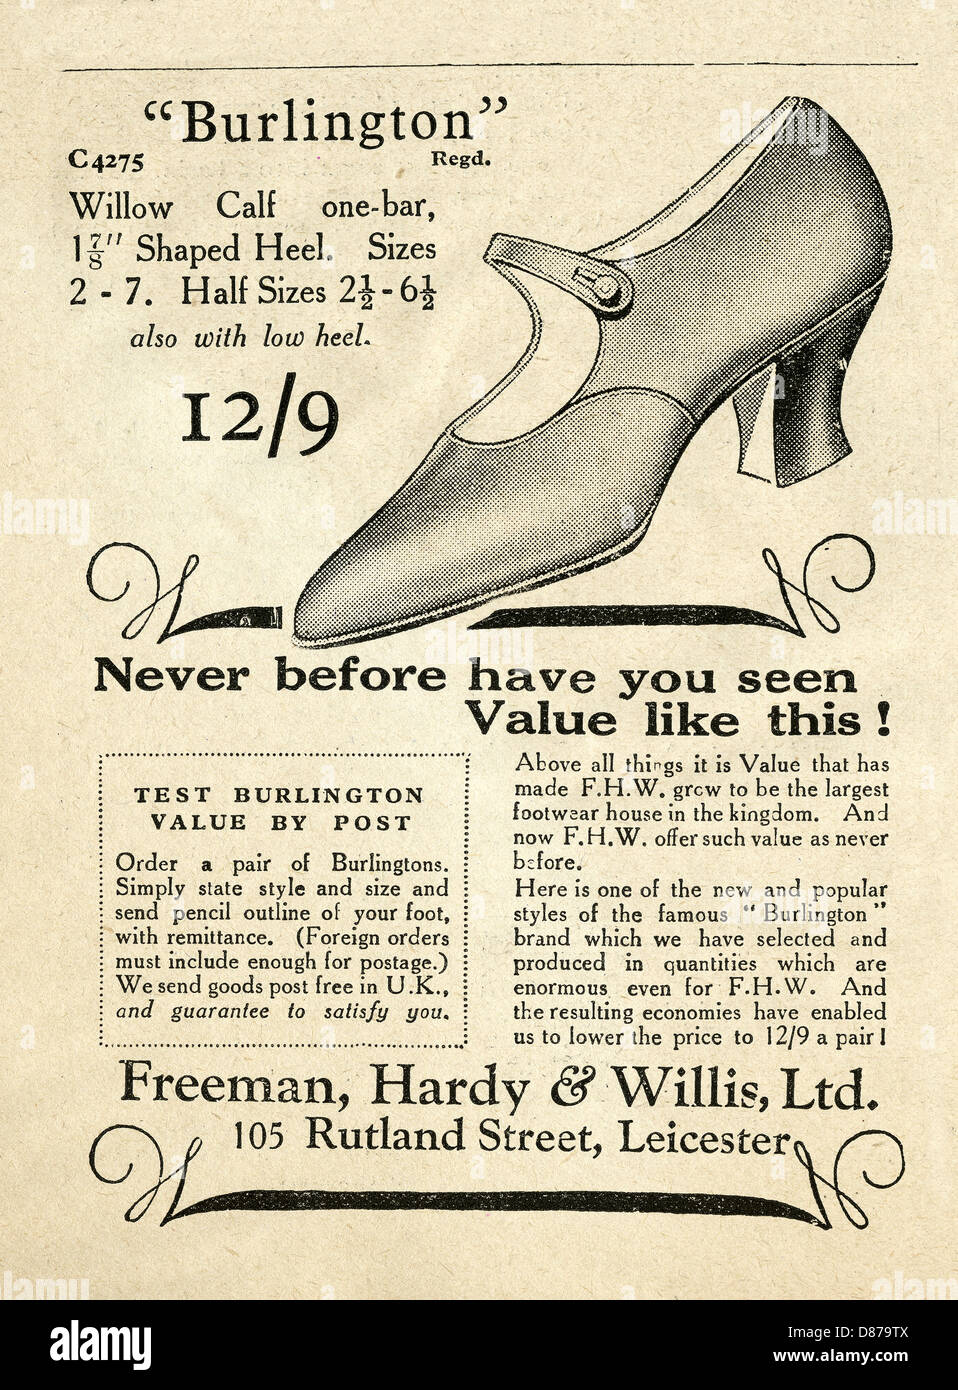 1928 advert for Freeman Hardy and Willis women's fashion shoes - the advert emphasises value for money - Stock Image